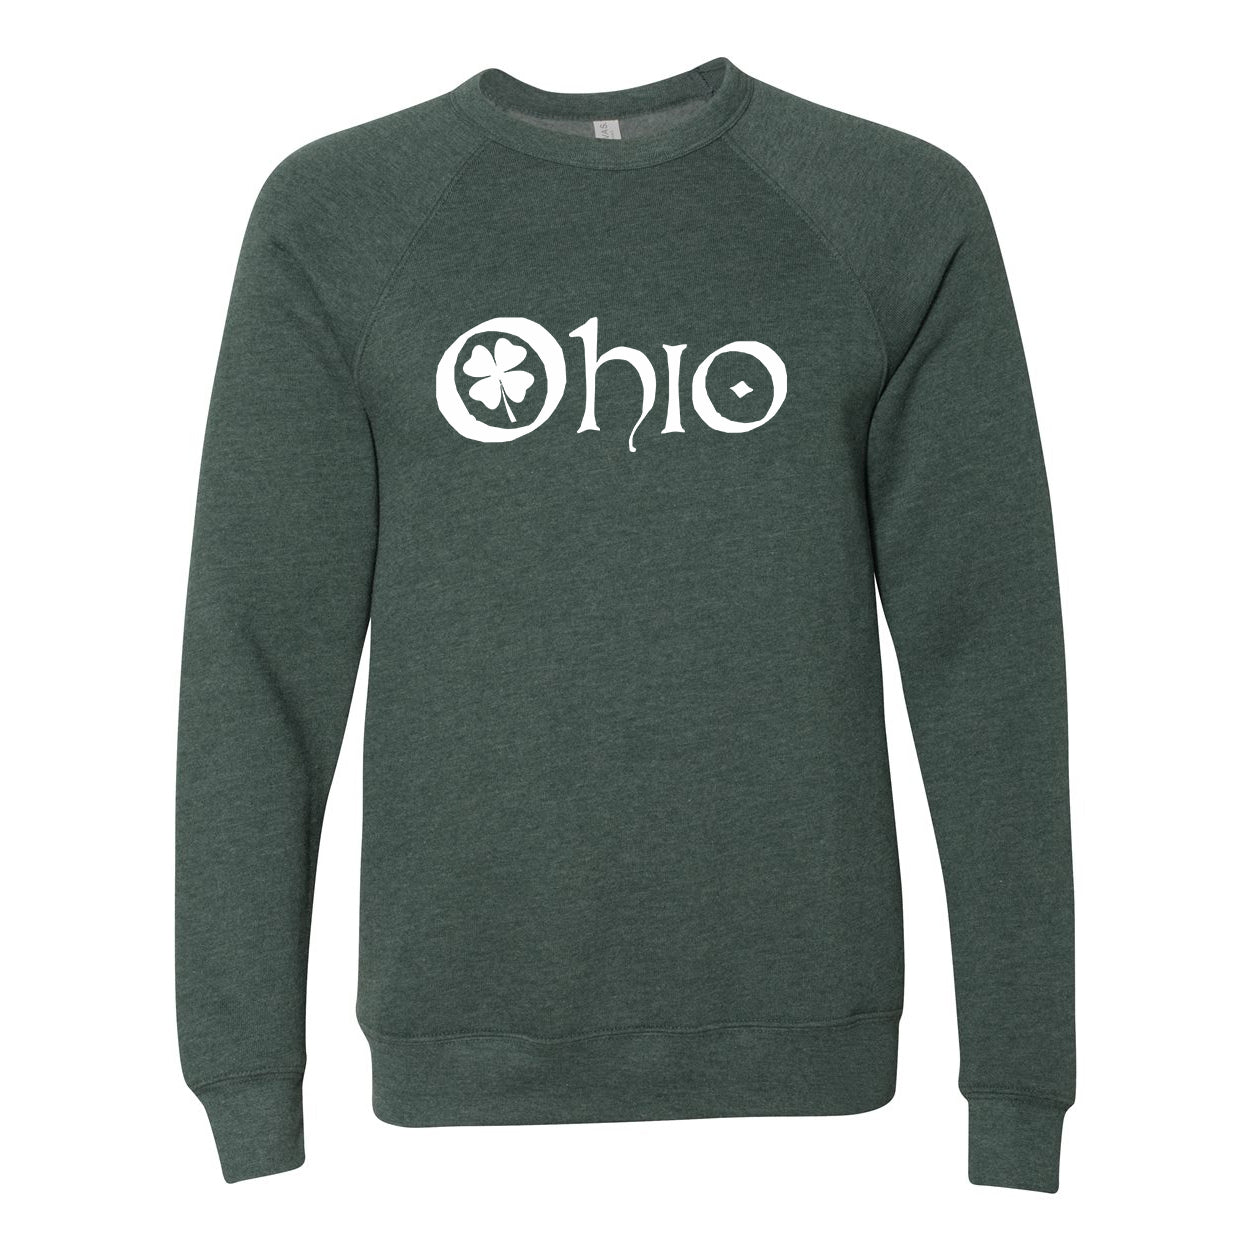 Ohio Clover Ultra Soft Sweatshirt - Clothe Ohio - Soft Ohio Shirts